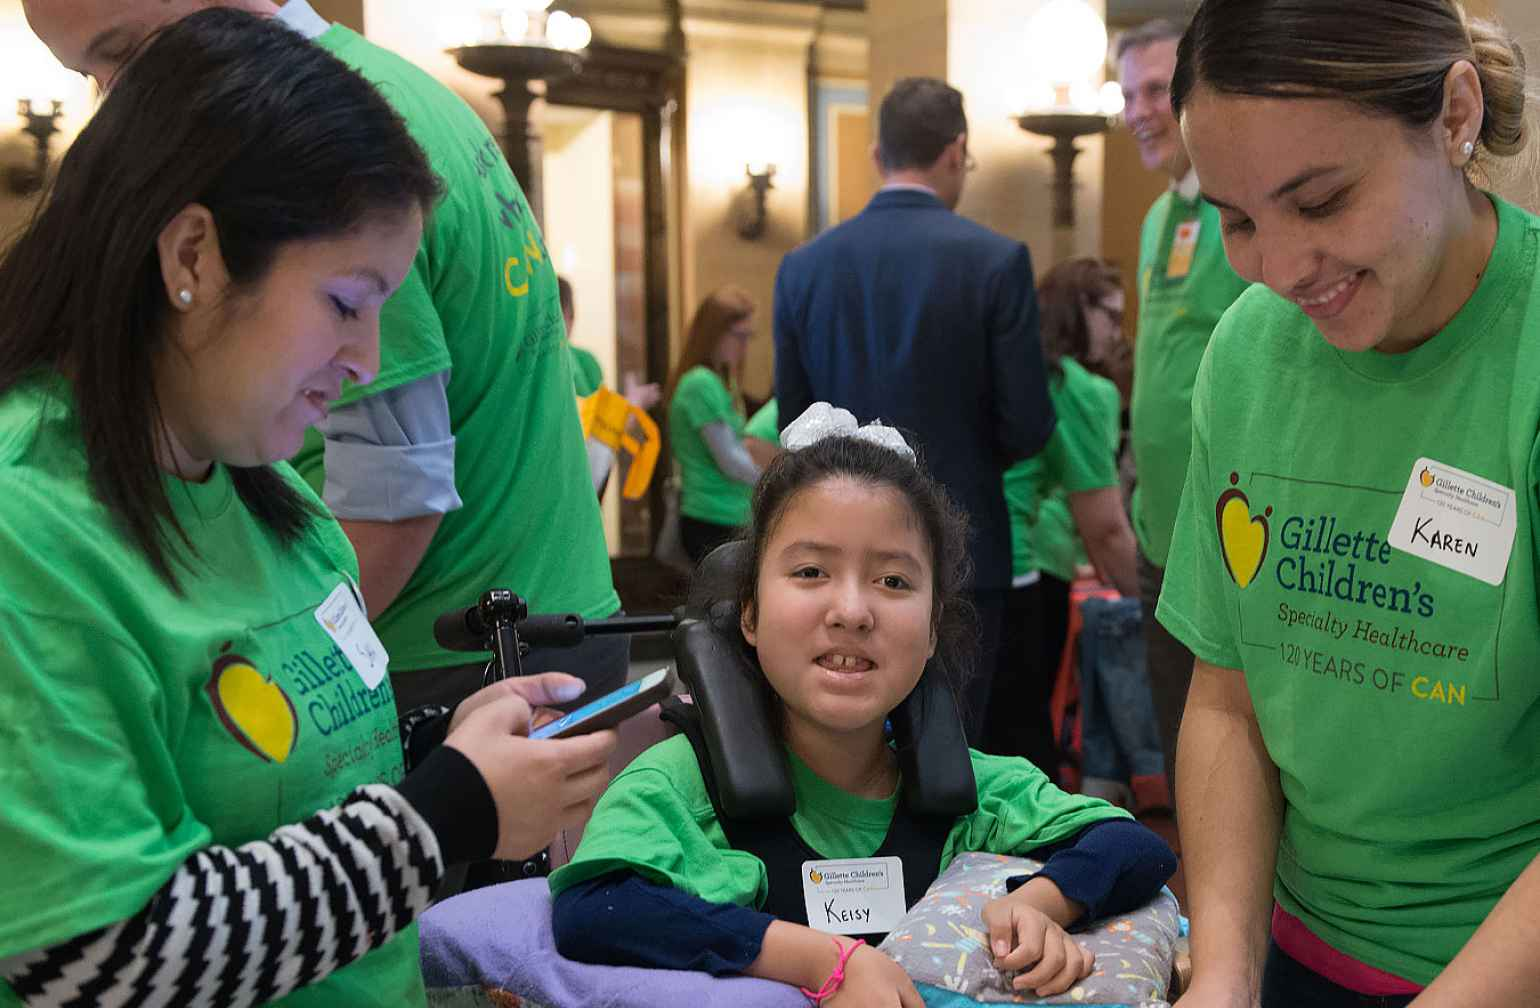 Gillette patient with her family during Capitol day